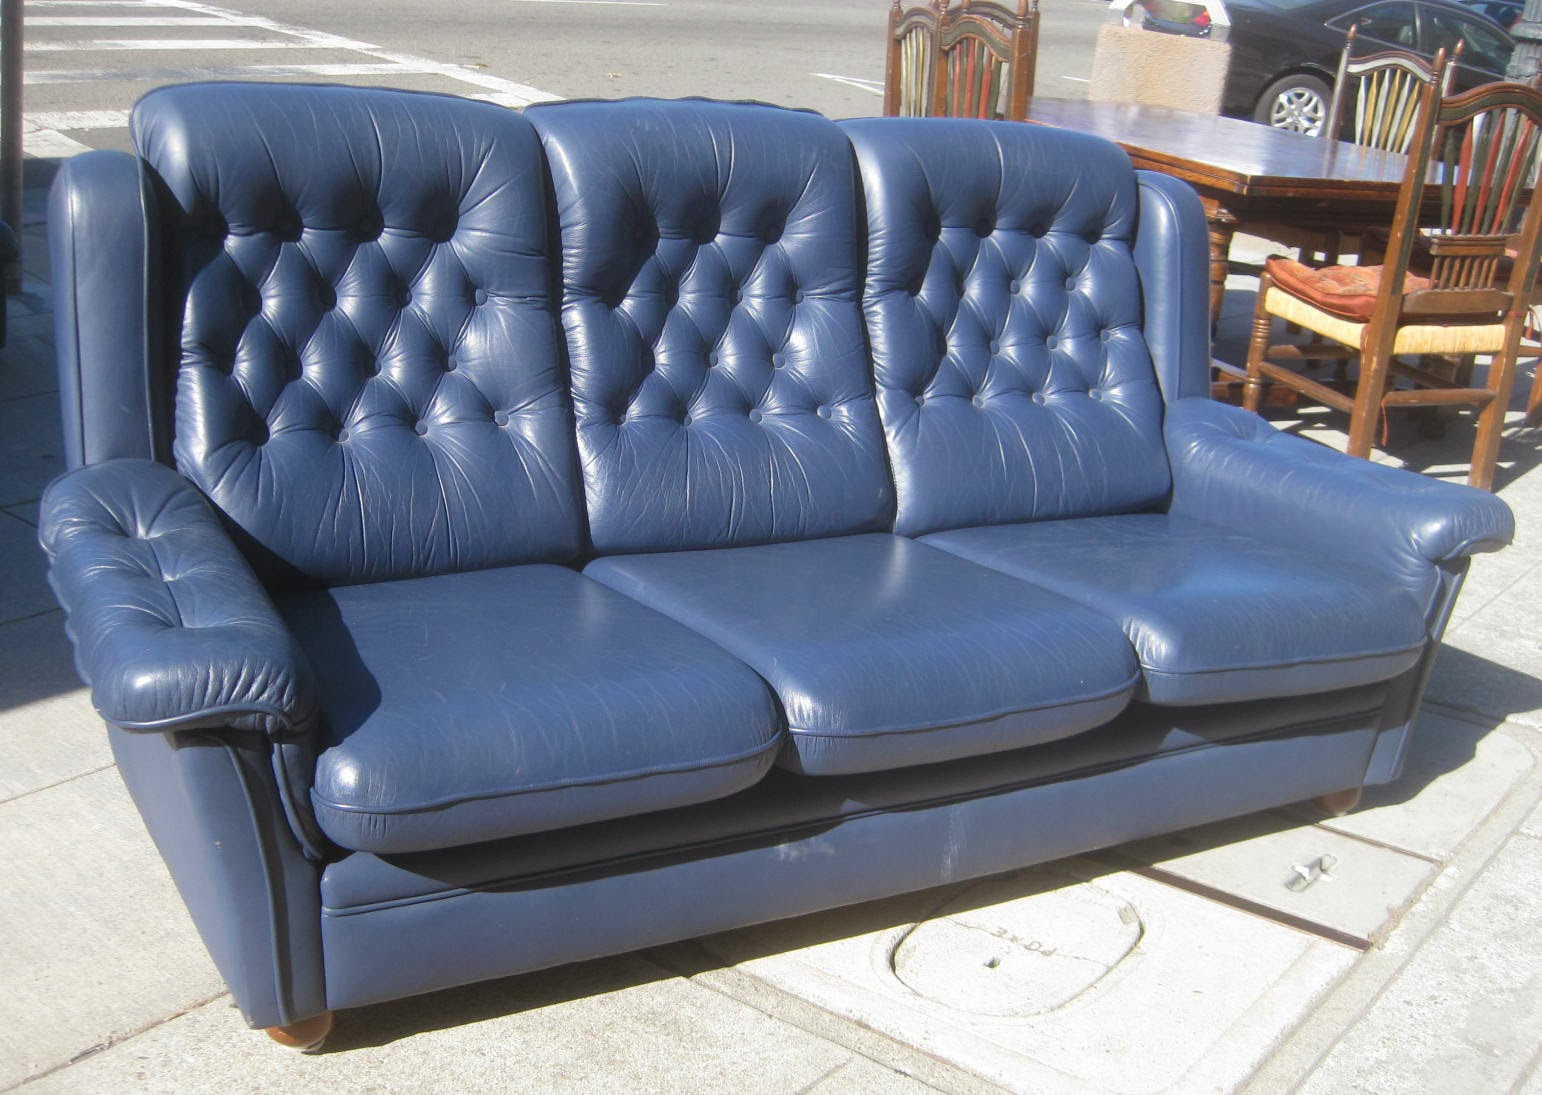 furniture collectibles sold blue leather sofa chair and ottoman